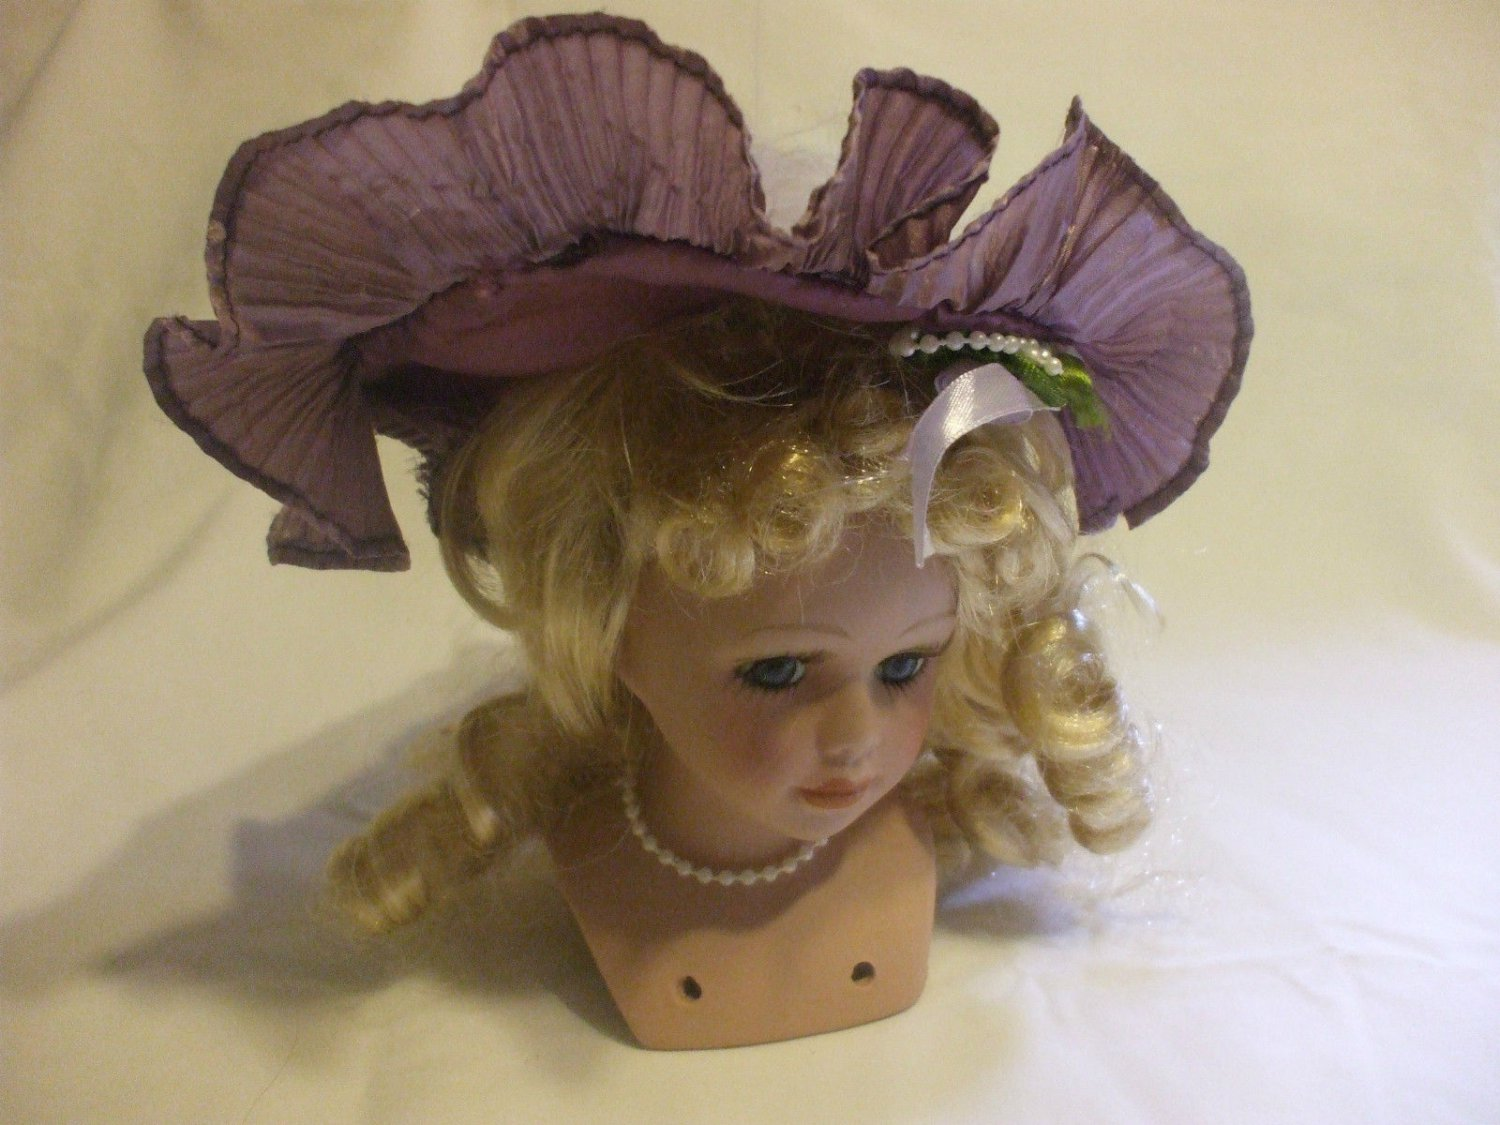 Porcelain Doll Head With Purple Hat & Blond Hair For Crafters And Collectors